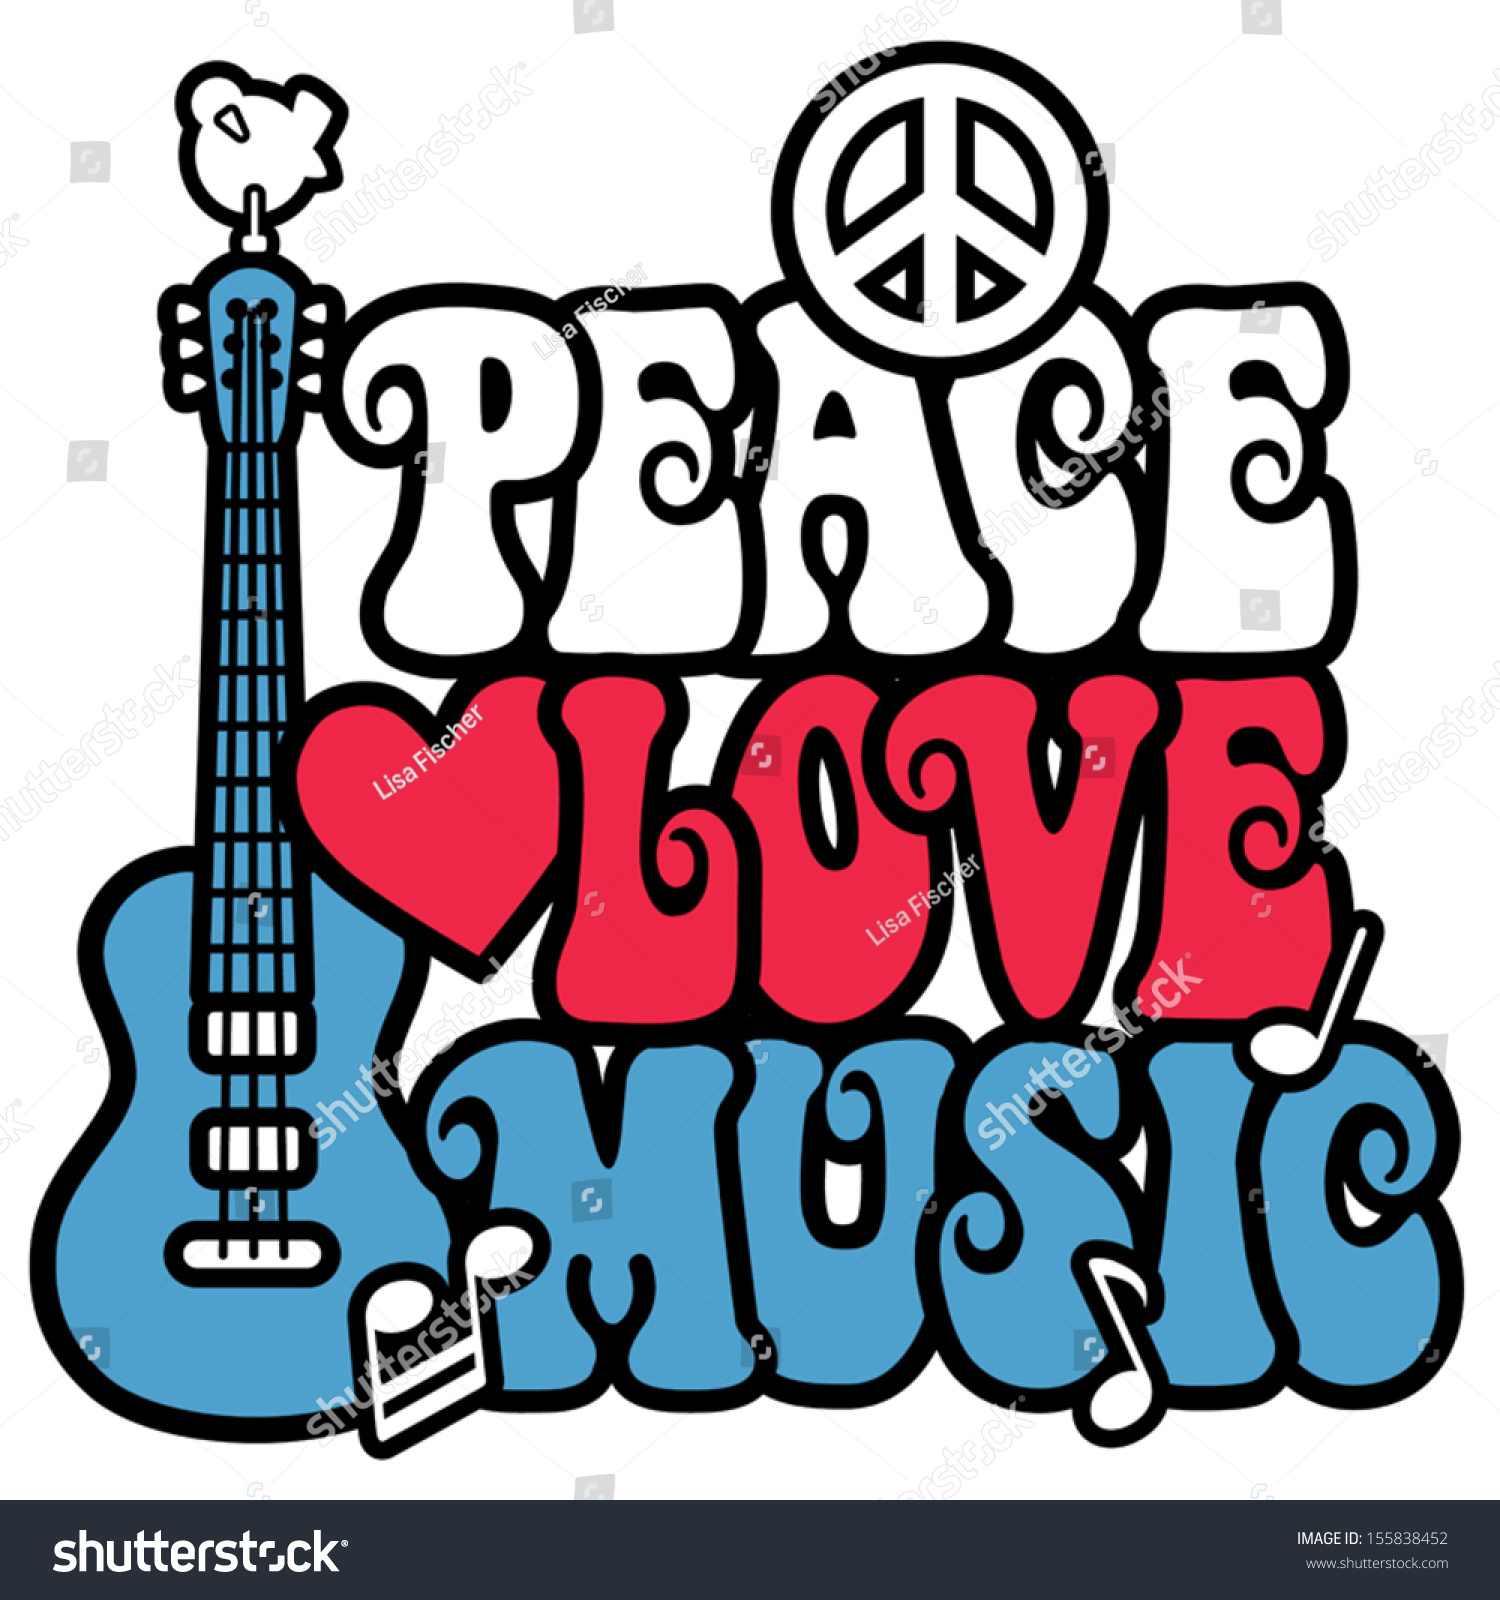 Peace love music text design peace stock vector 155838452 shutterstock peace love music text design with peace symbol guitardove heart and musical buycottarizona Image collections